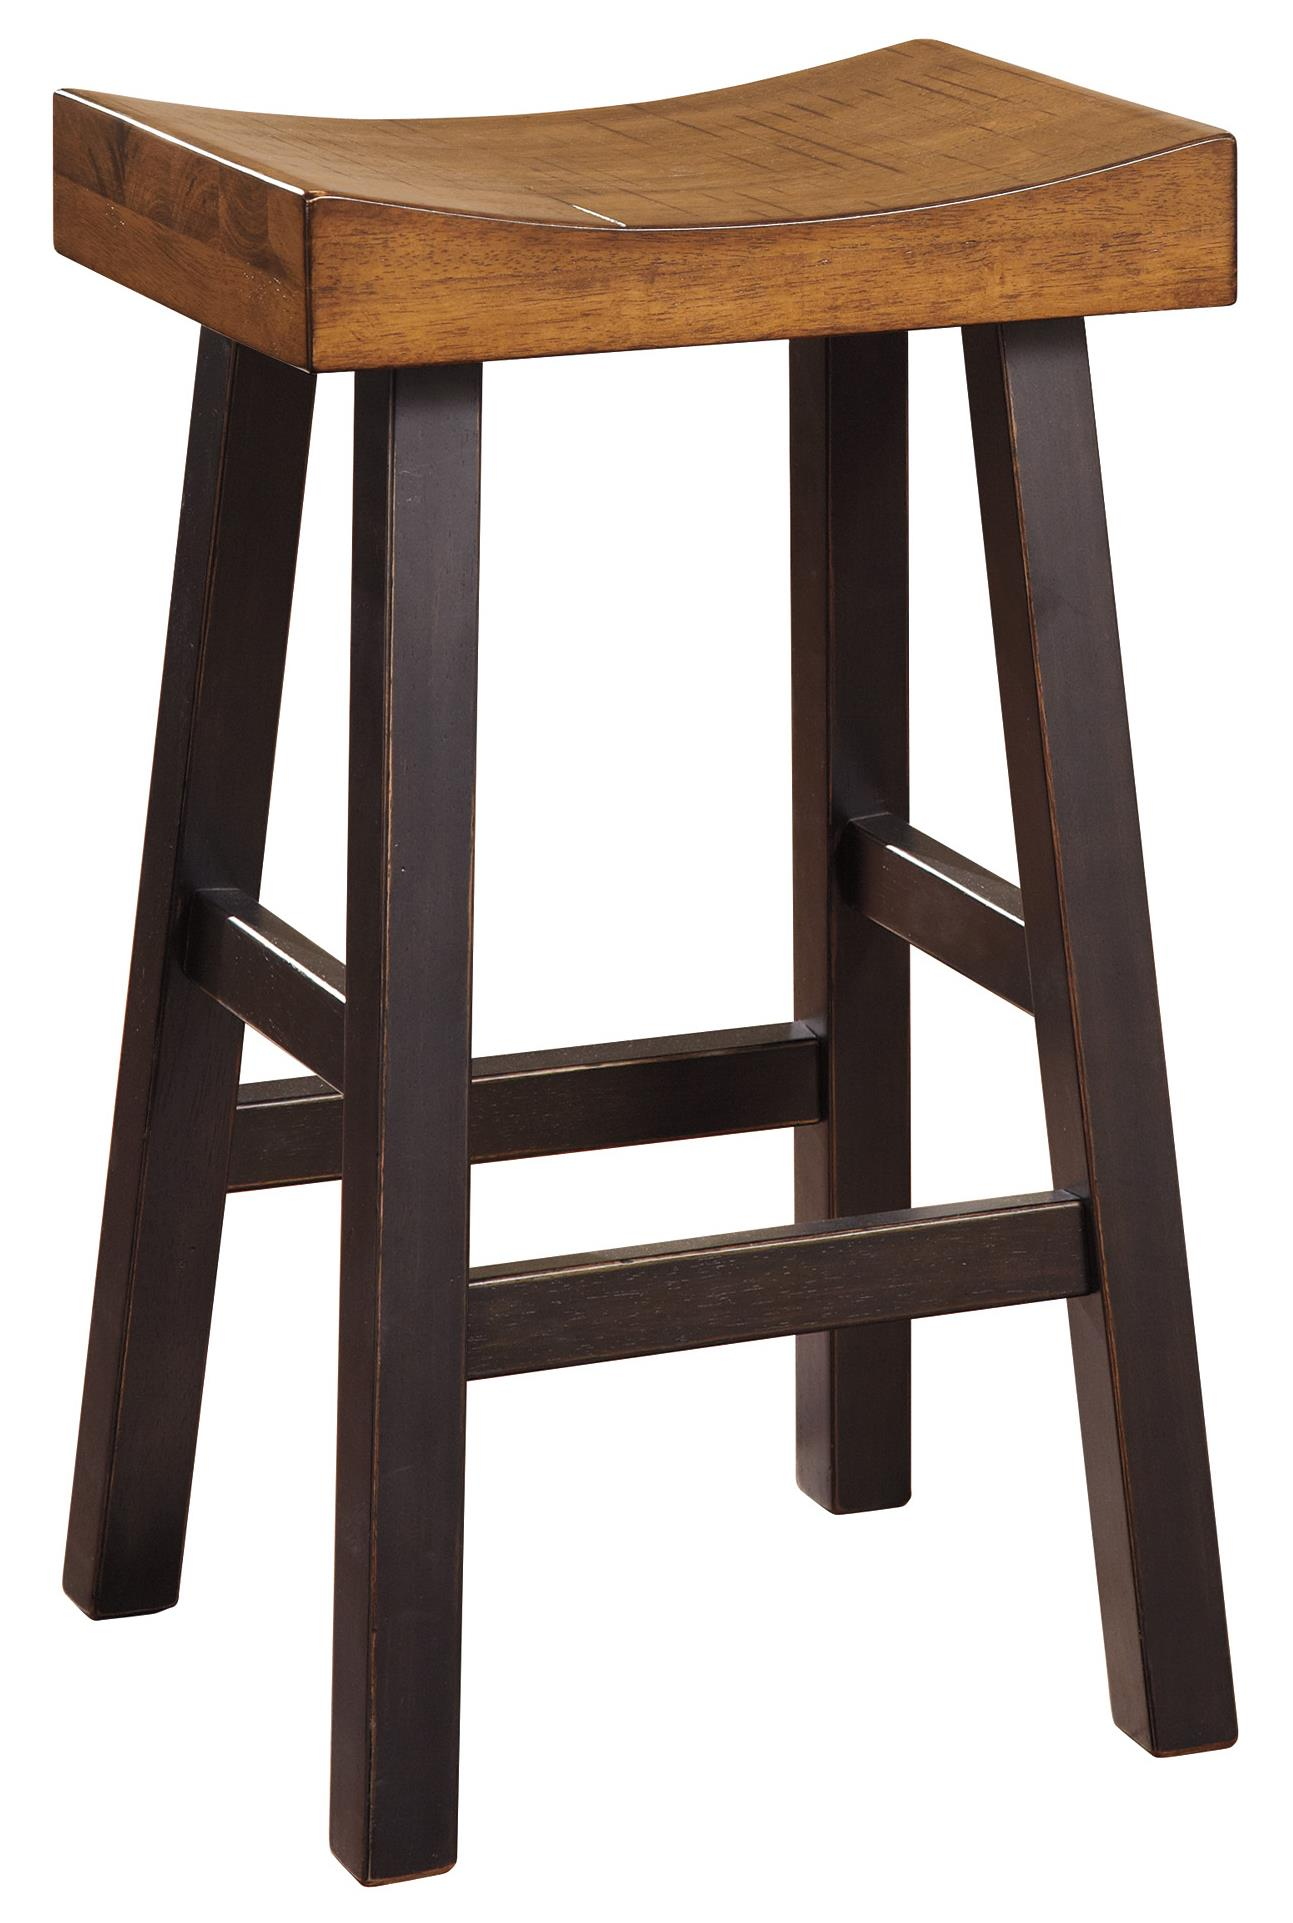 Signature Design by Ashley Glosco Tall Stool - Item Number: D548-030